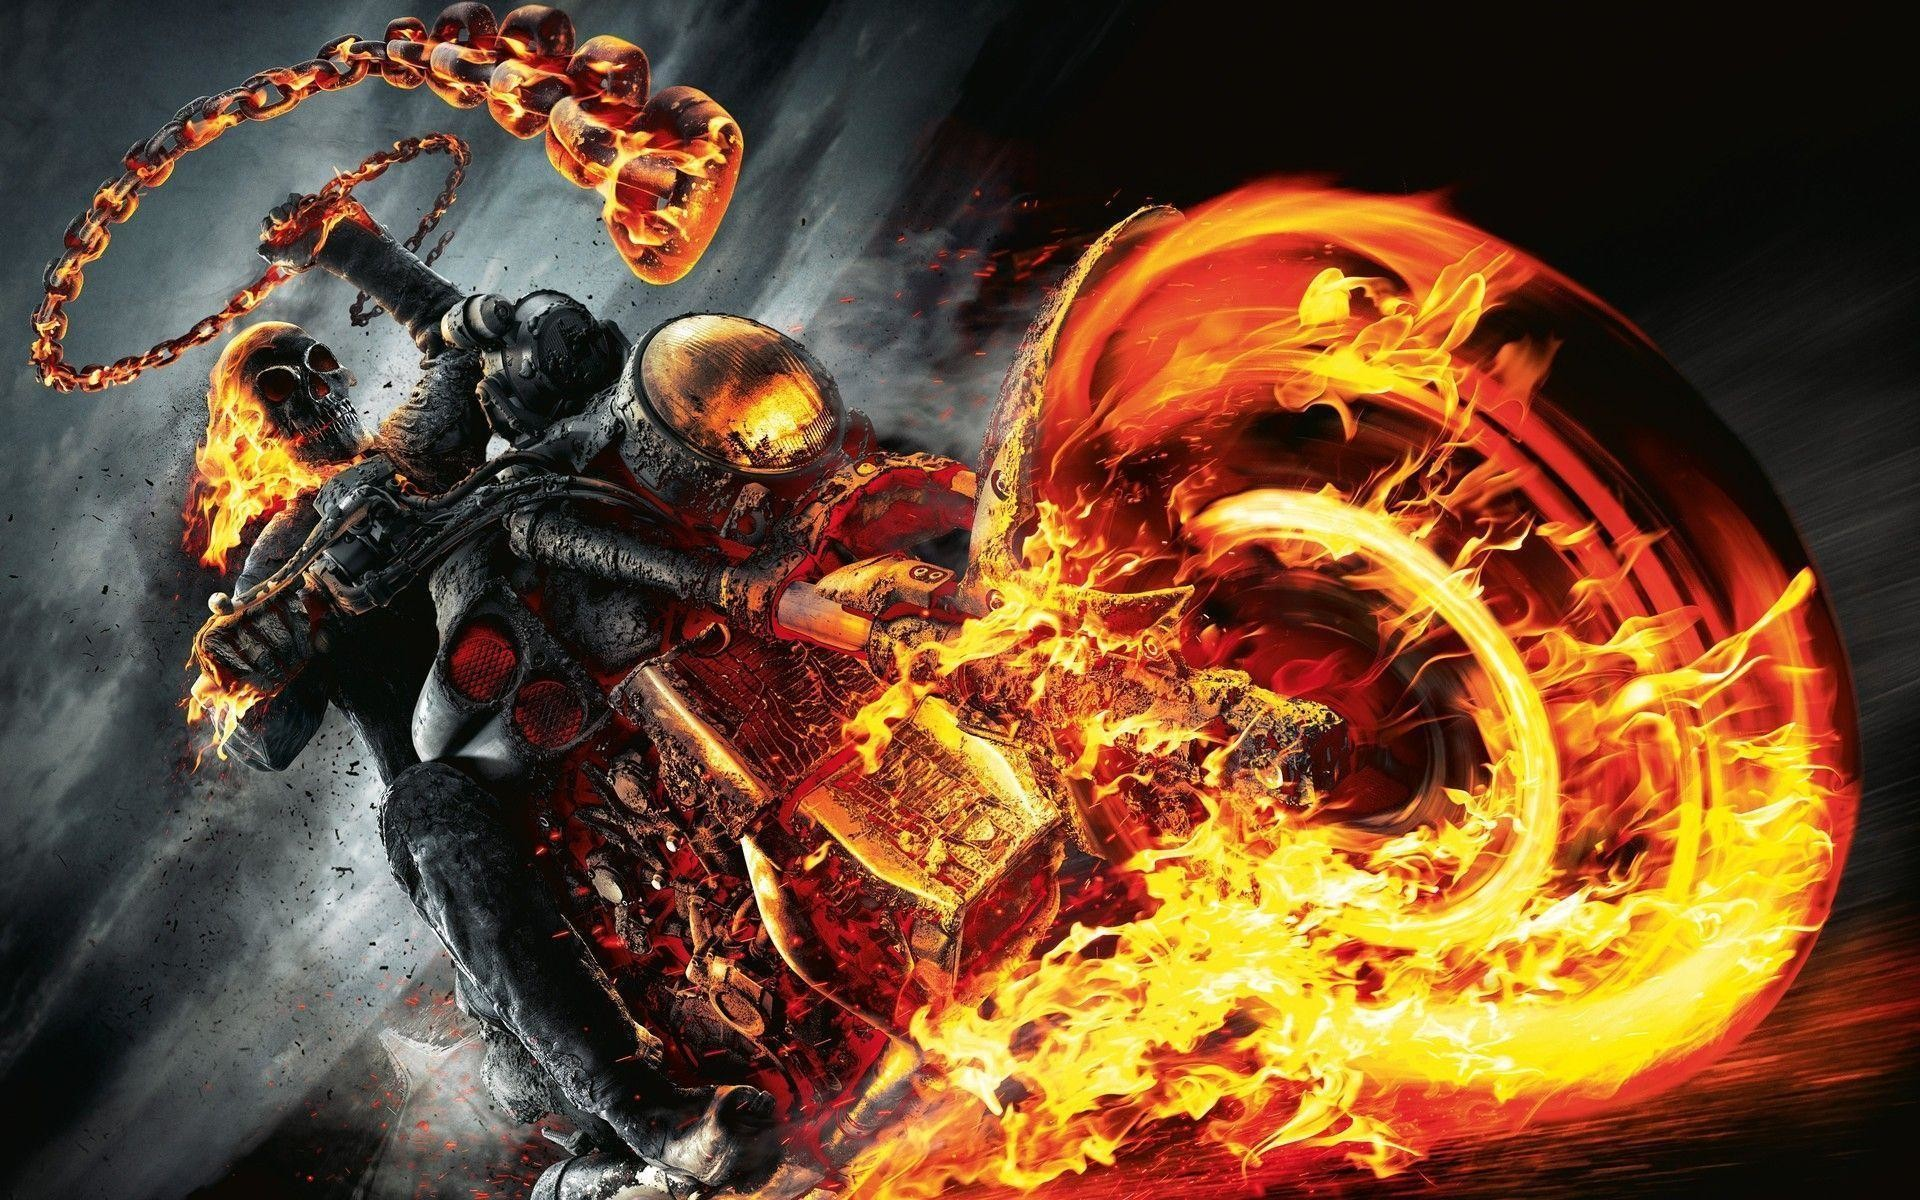 1920x1200 Most Downloaded Fire Skull Wallpapers - Full HD wallpaper search